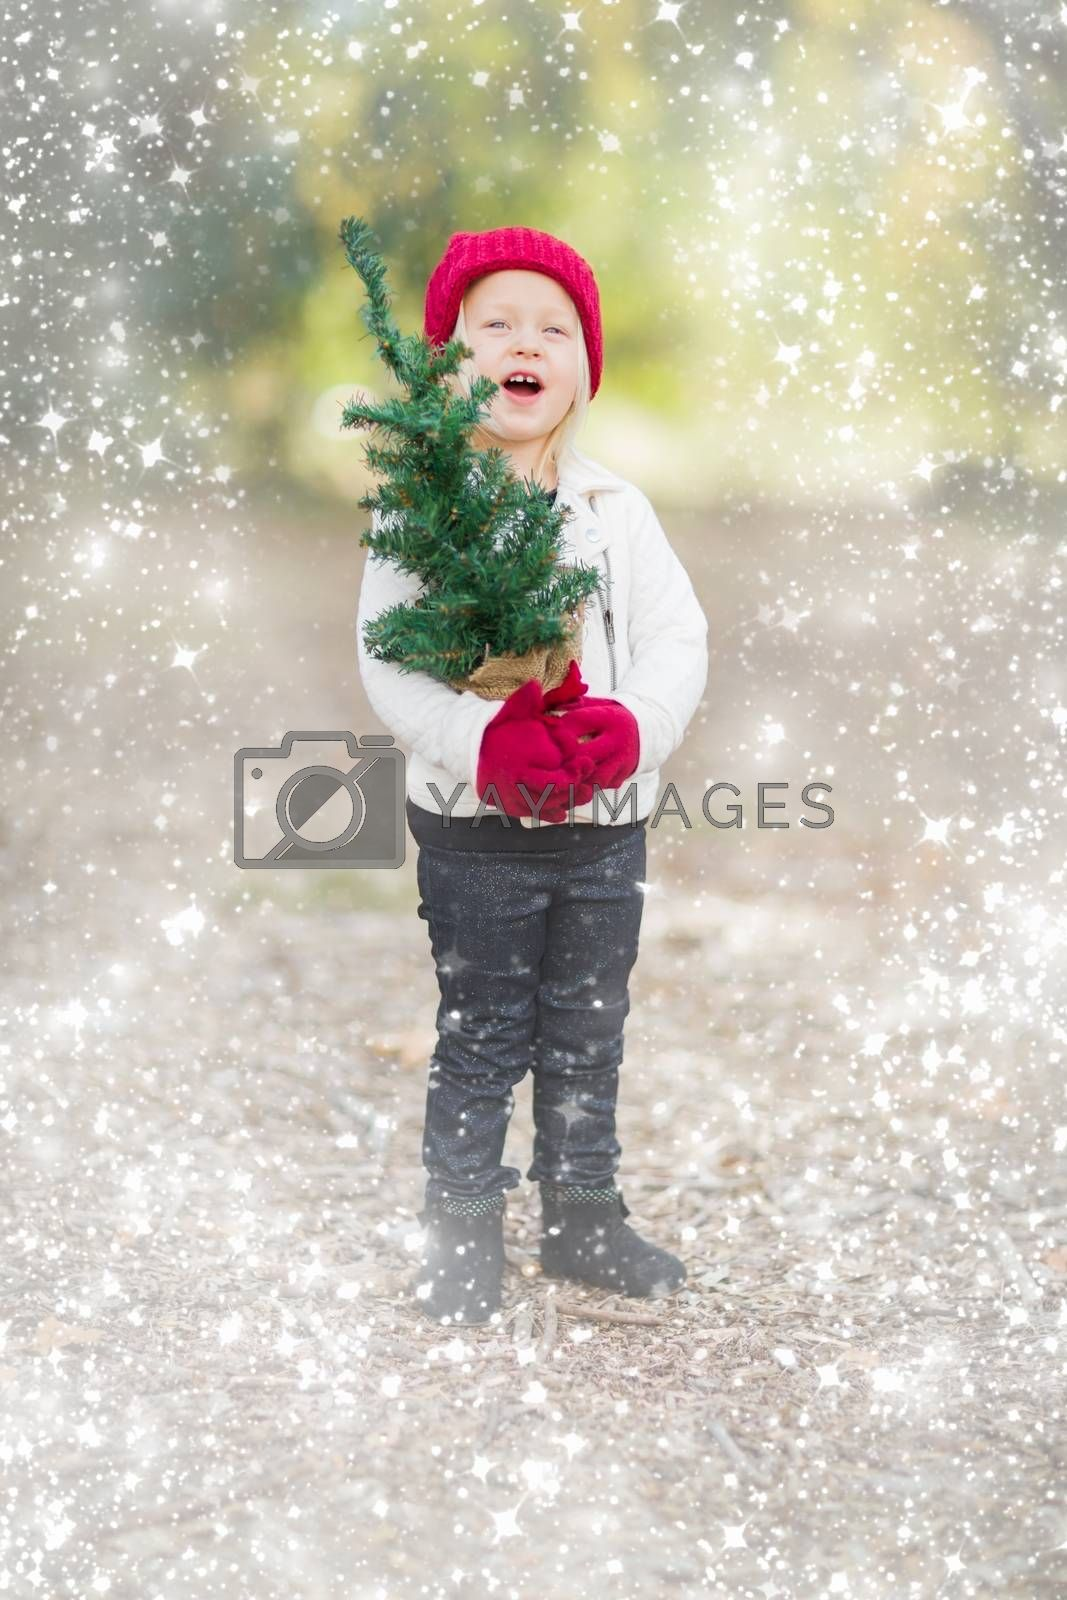 Baby Girl In Red Mittens and Cap Holding Small Christmas Tree Outdoors with Snow Effect.